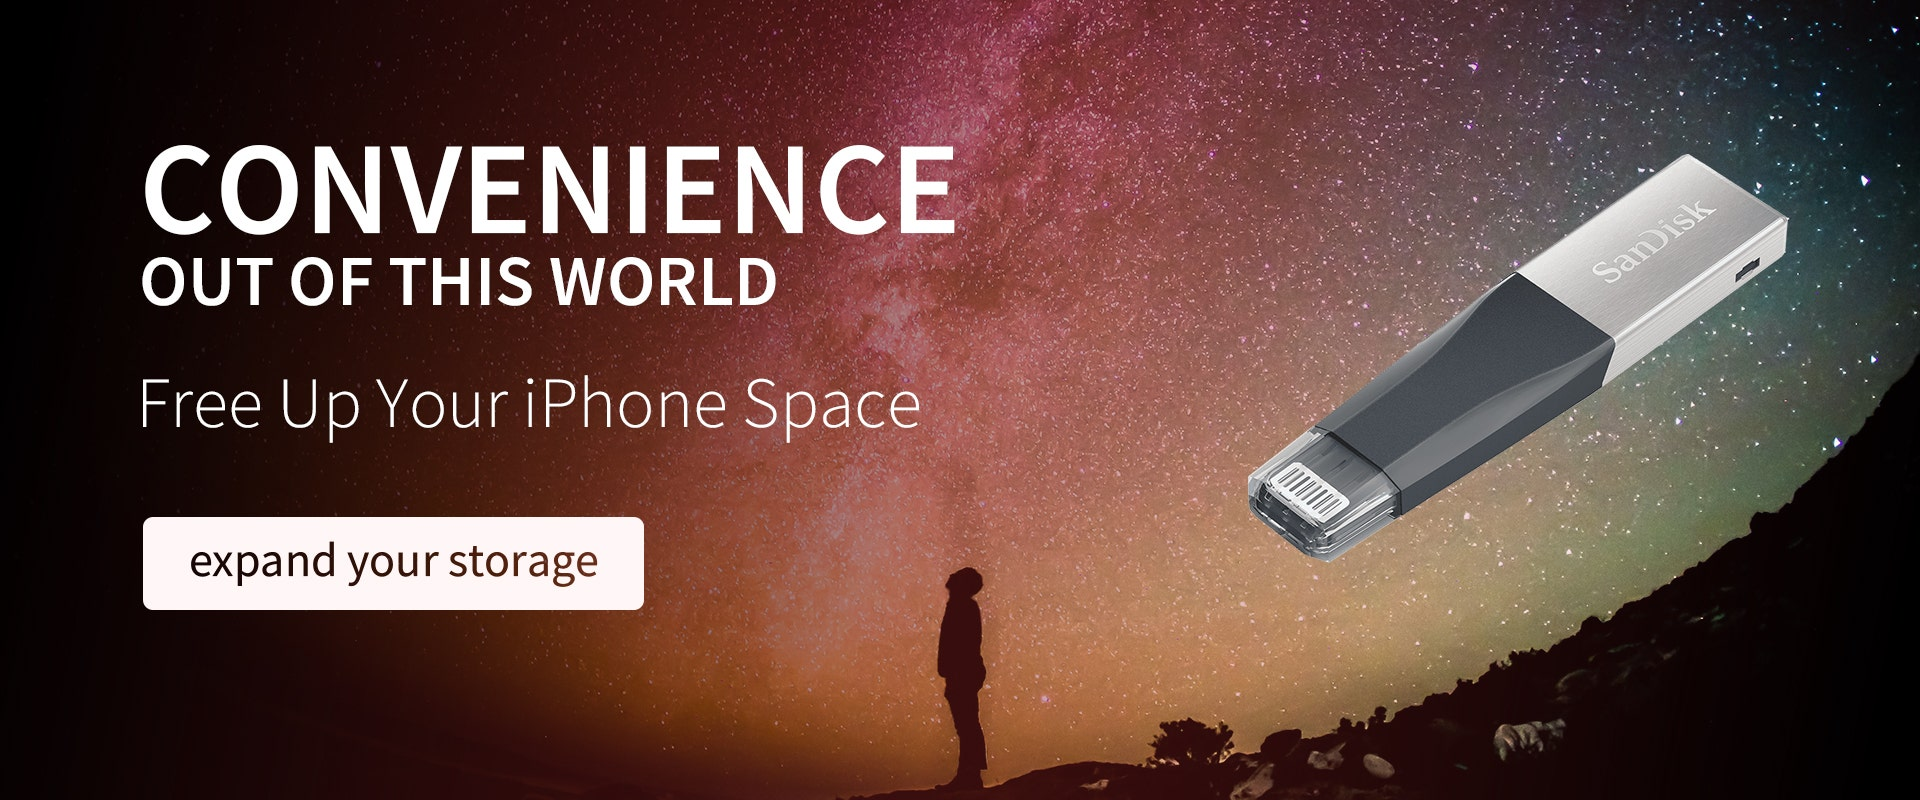 SanDisk enabling you to free your space on your iPhone.